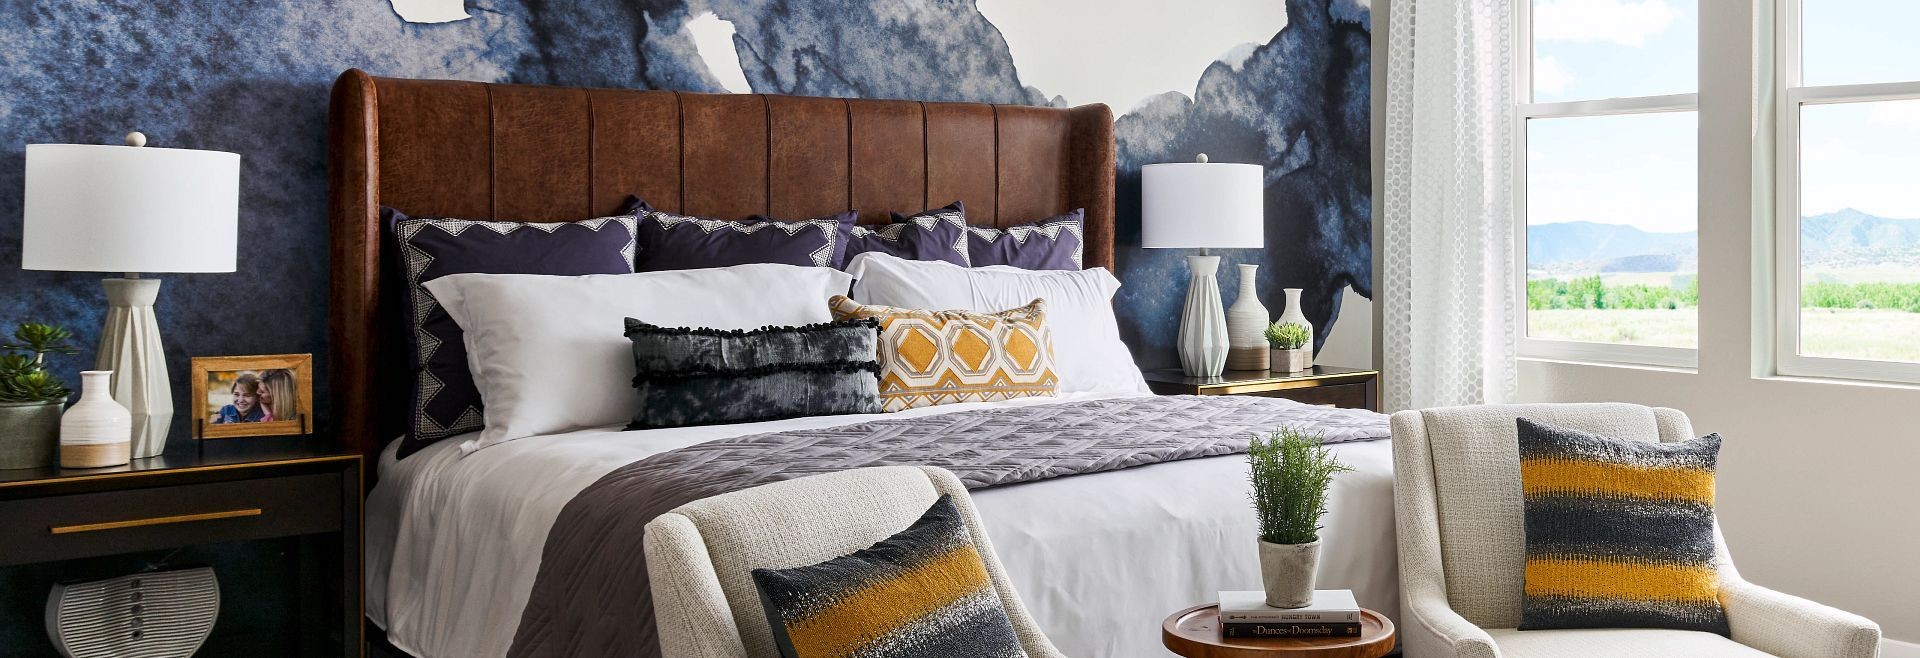 Bedroom featured in the 4052 Twilight By Shea Homes in Denver, CO